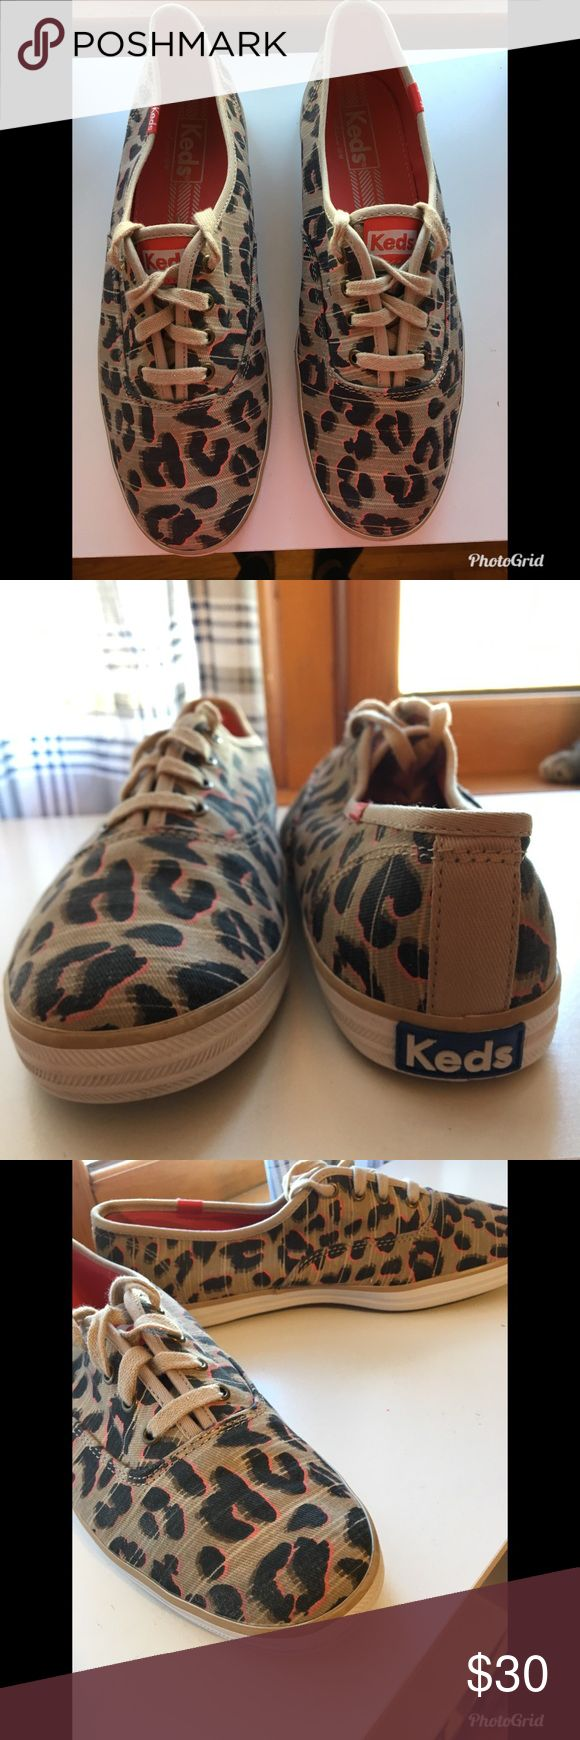 🚨SALE🚨 Cheetah Keds Only been worn a few times. Side Note: has some stains on the inside from dirt would probably come out after being washed. Keds Shoes Sneakers